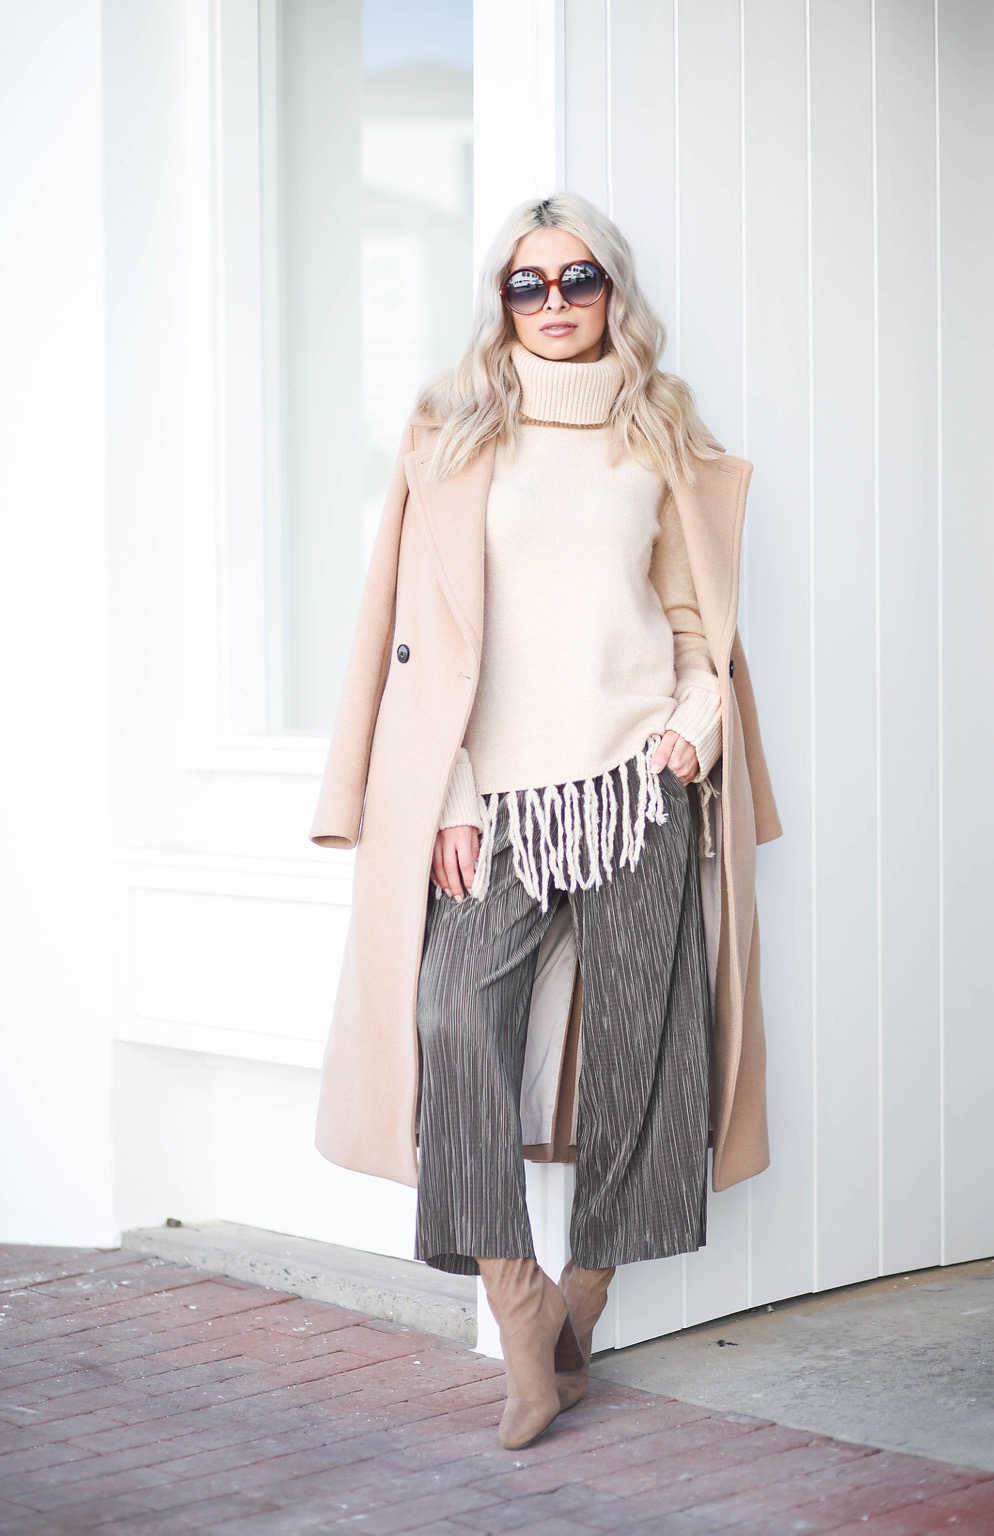 creme colored outfit_club monaco peacoat_club monaco_tan coat_best winter coat_icy blonde hair_kim kardashian hair_lauren conrad hair_blonde lob_forever 21 sweater_vince camuto booties_topshop culottes_culottes_tom ford sunglasses